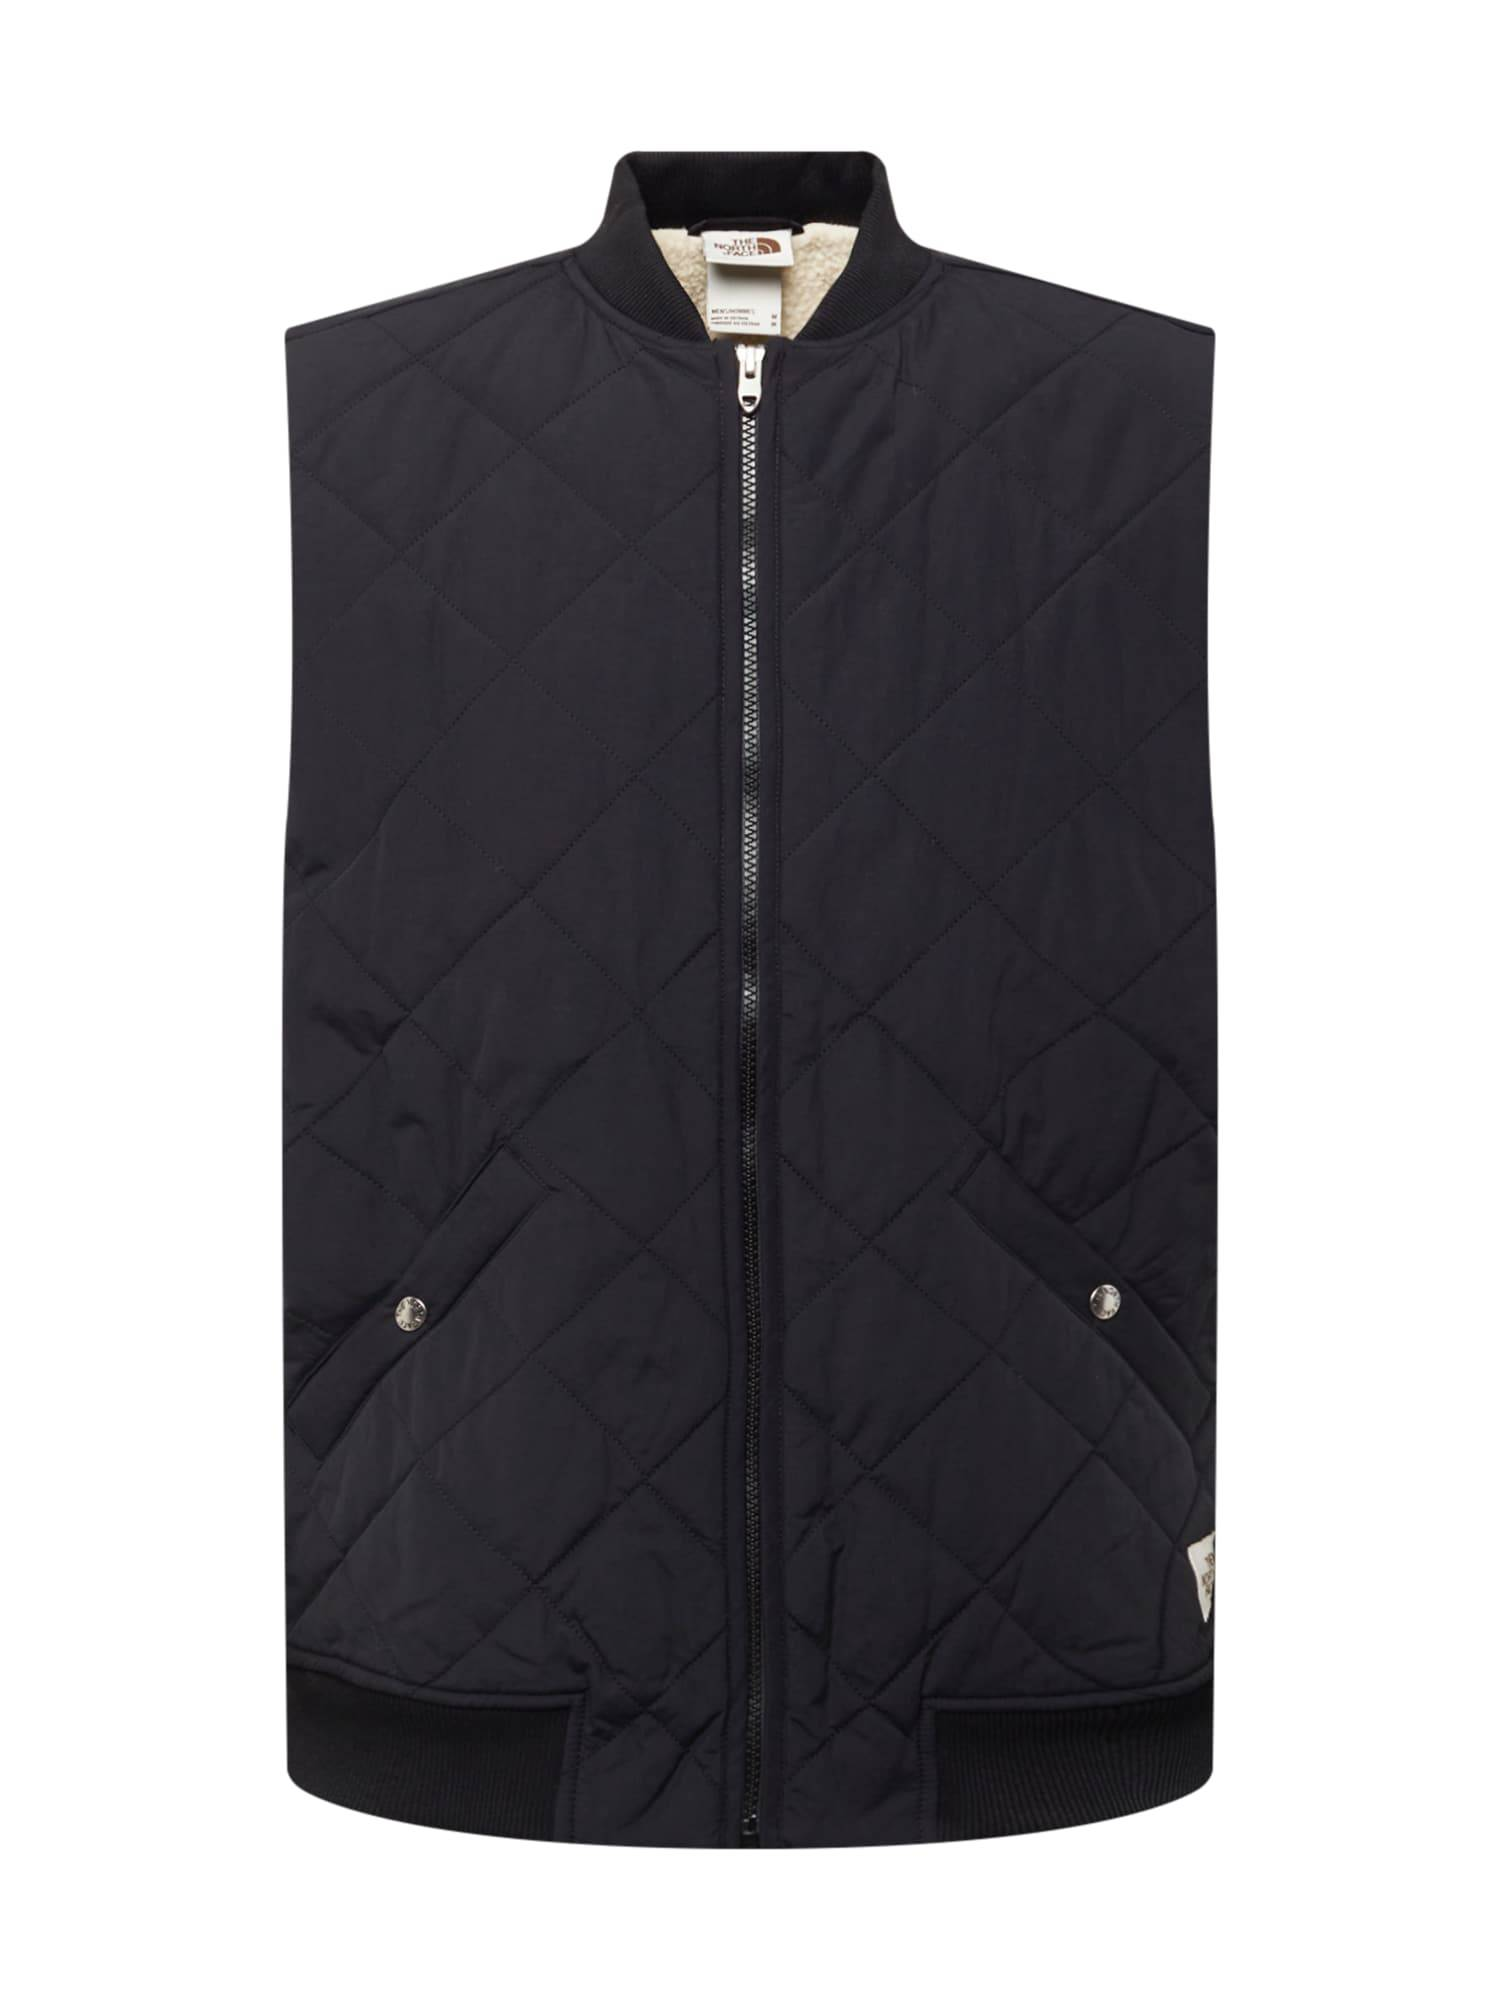 THE NORTH FACE Gilet  - Noir - Taille: XL - male